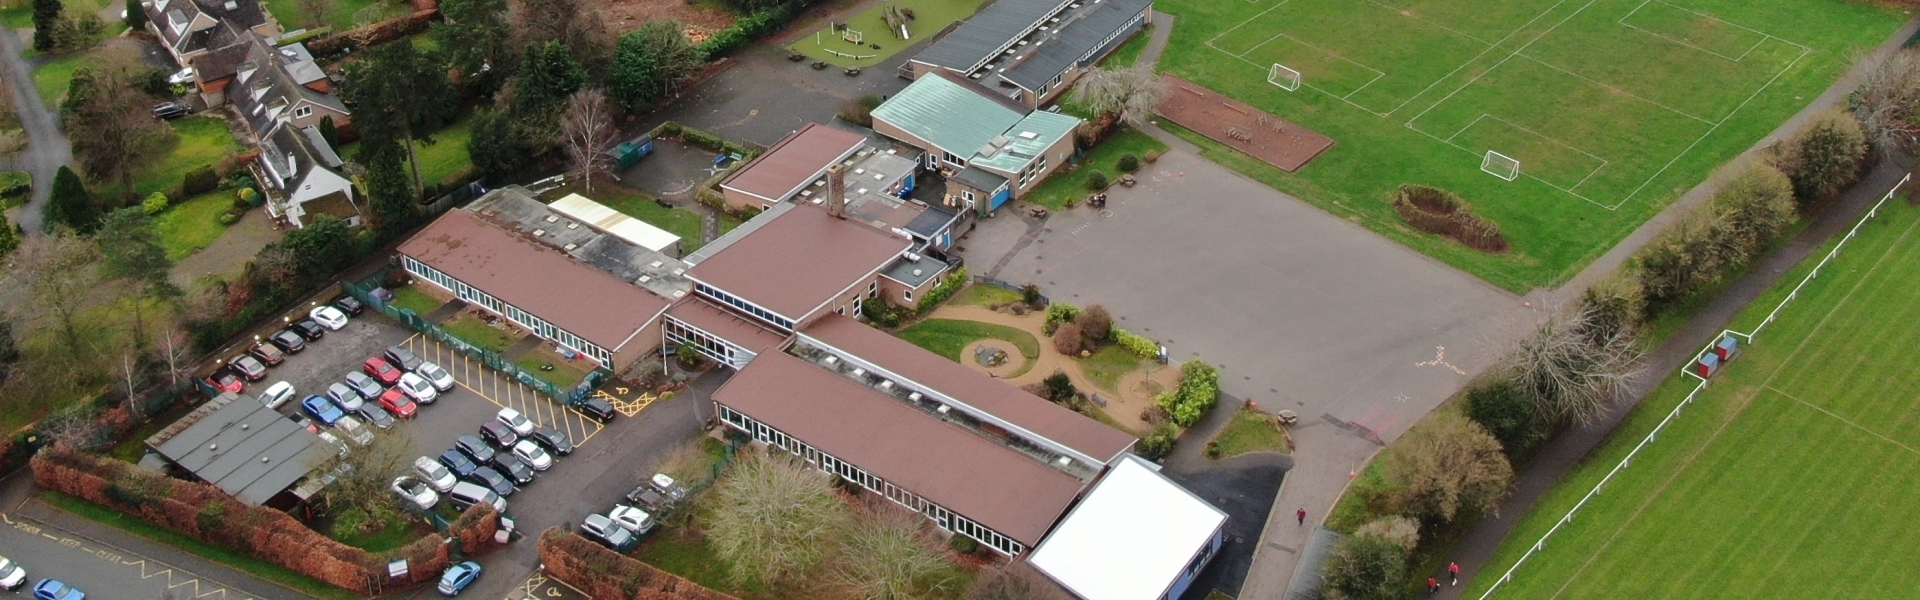 Aerial Shot of School 2020